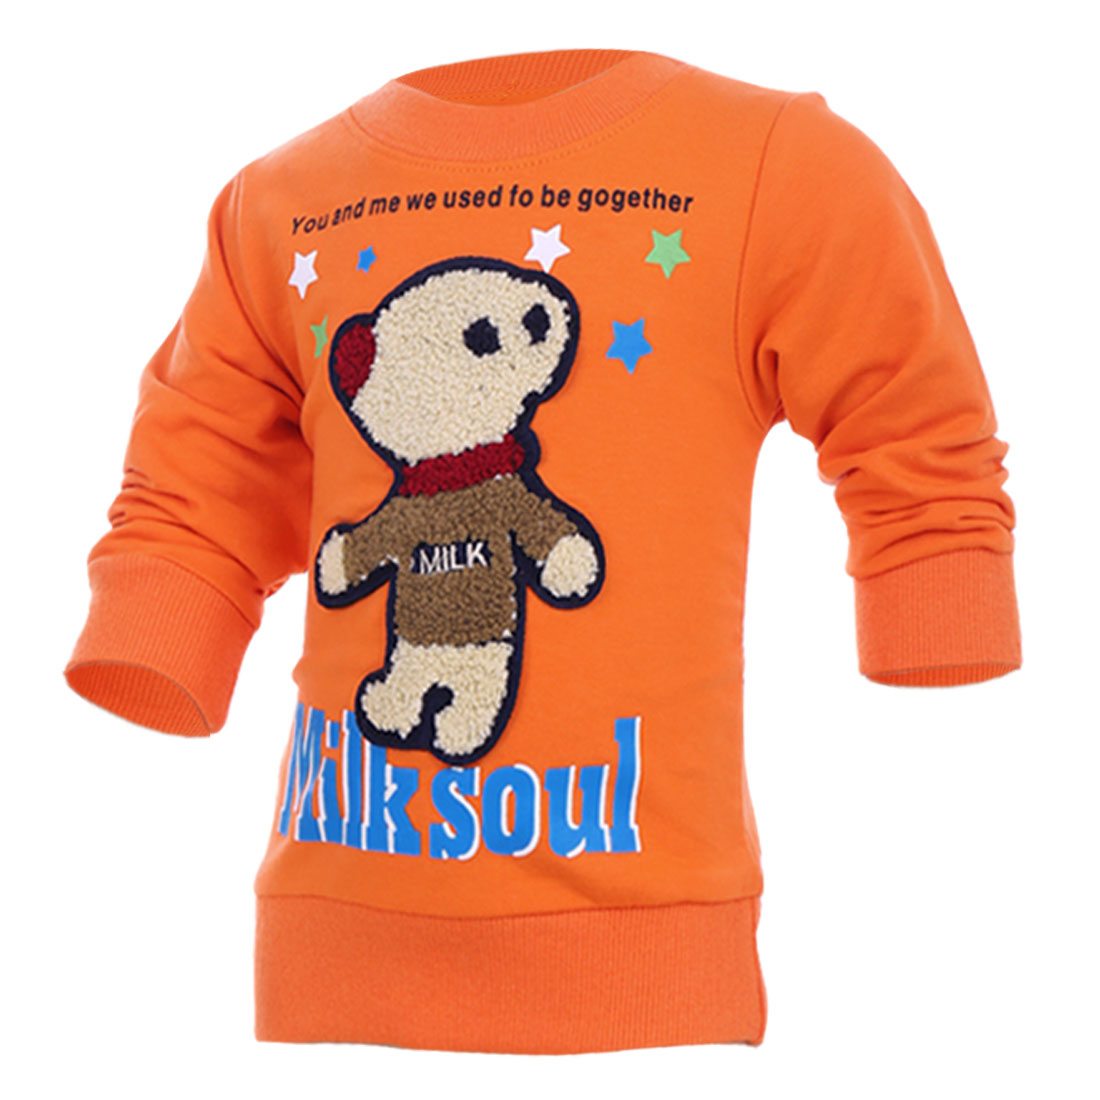 Boys Girls Chic Orange Color Letters Pattern Design Spring Casual T-Shirt 3T